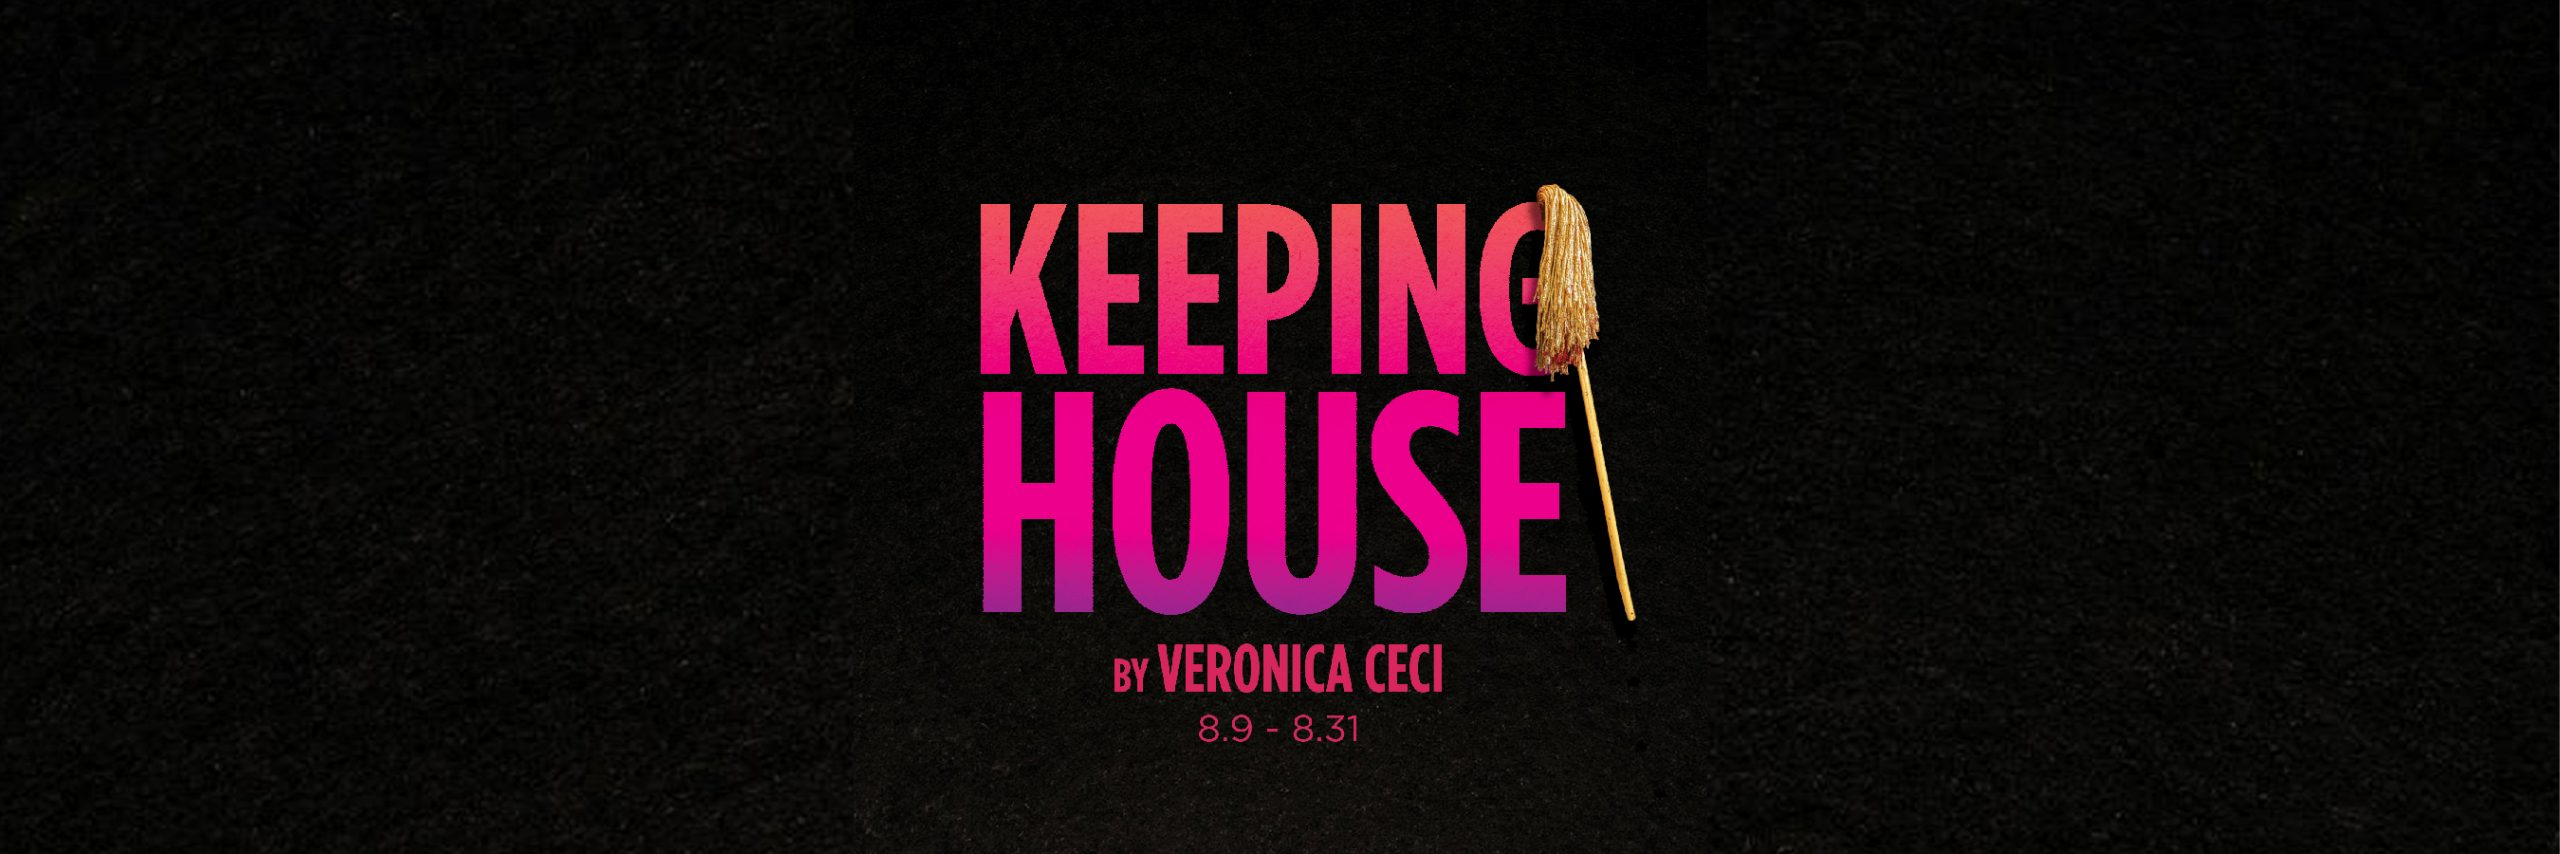 Keeping House by Veronica Ceci, gallery graphic. August 9th thru August 31st.